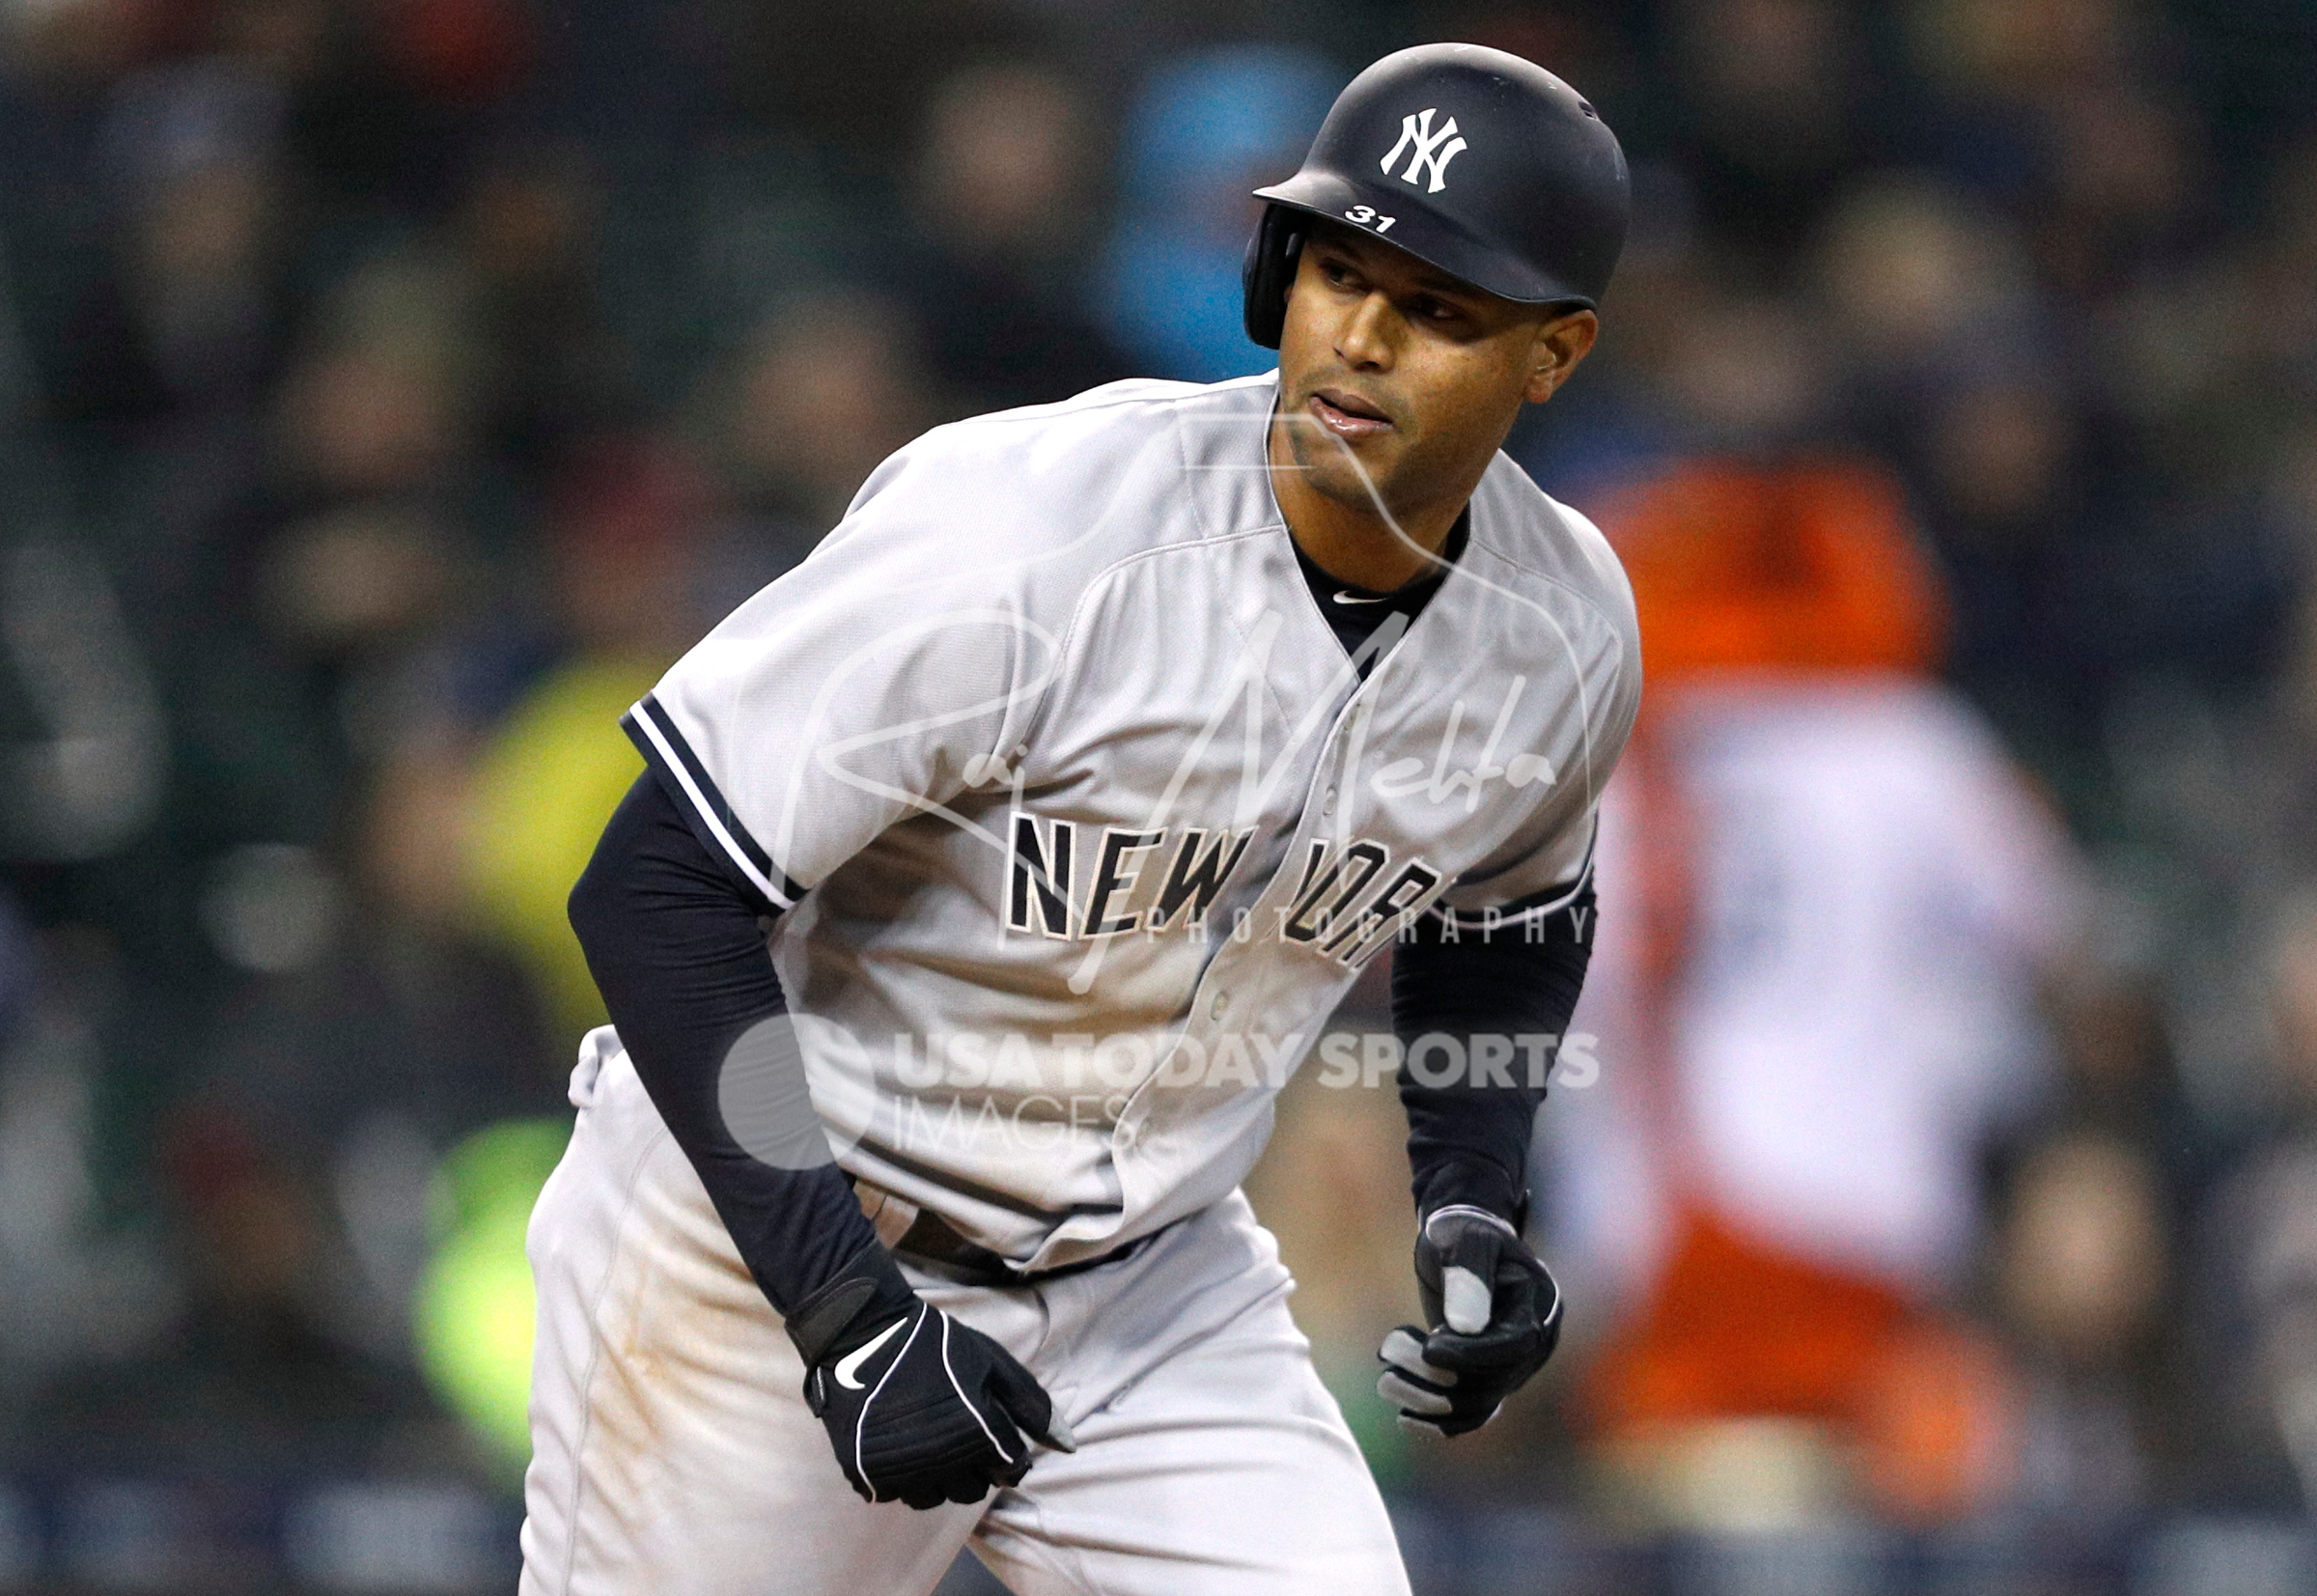 Apr 13, 2018; Detroit, MI, USA; New York Yankees center fielder Aaron Hicks (31) trots to first base with a walk during the seventh inning against the Detroit Tigers at Comerica Park. Mandatory Credit: Raj Mehta-USA TODAY Sports